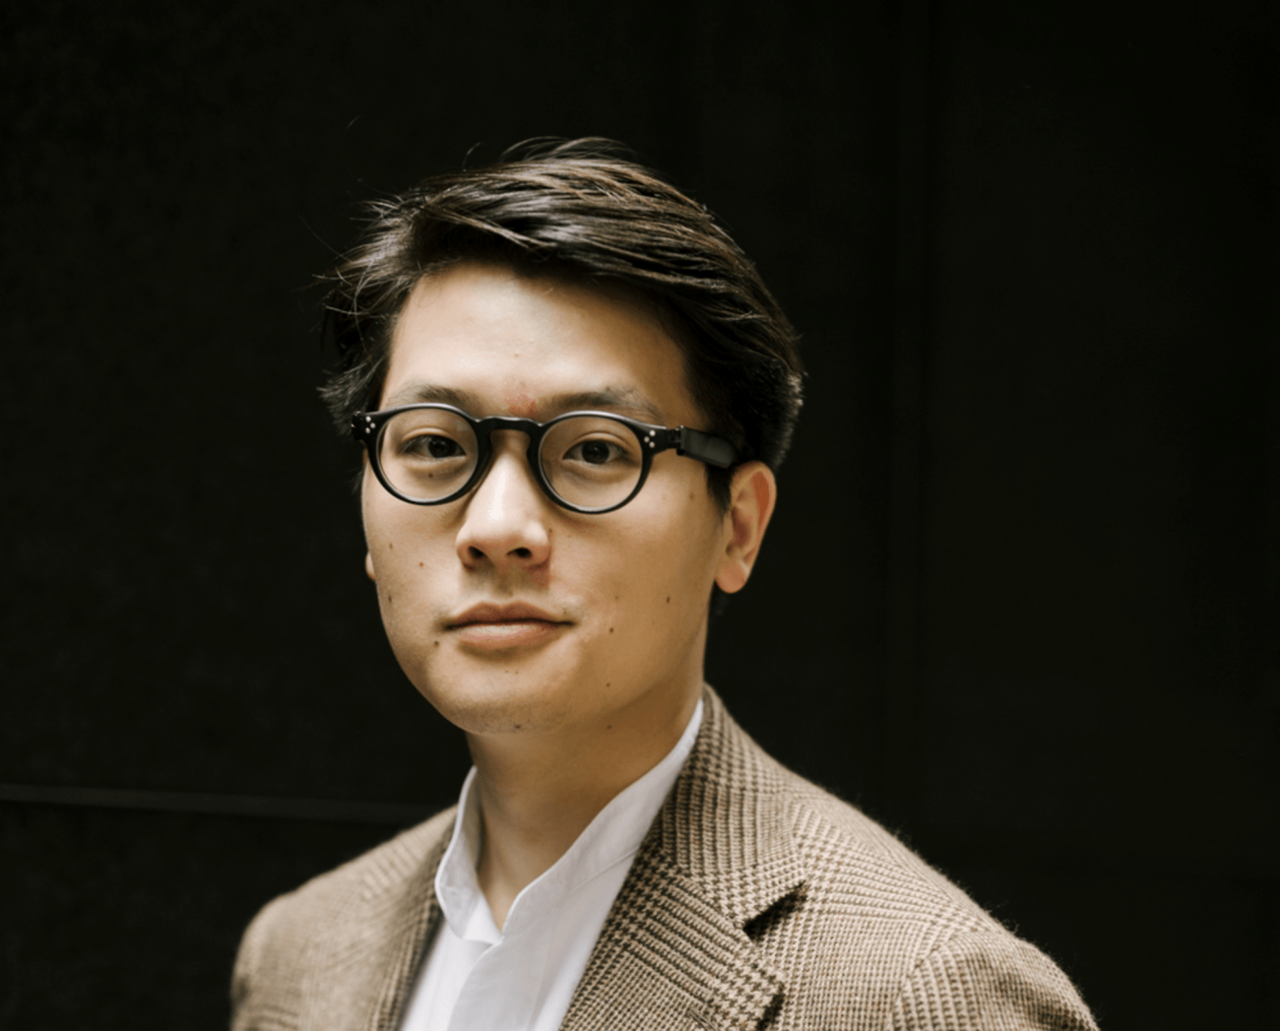 Leanluxe Interviews Mark Cho